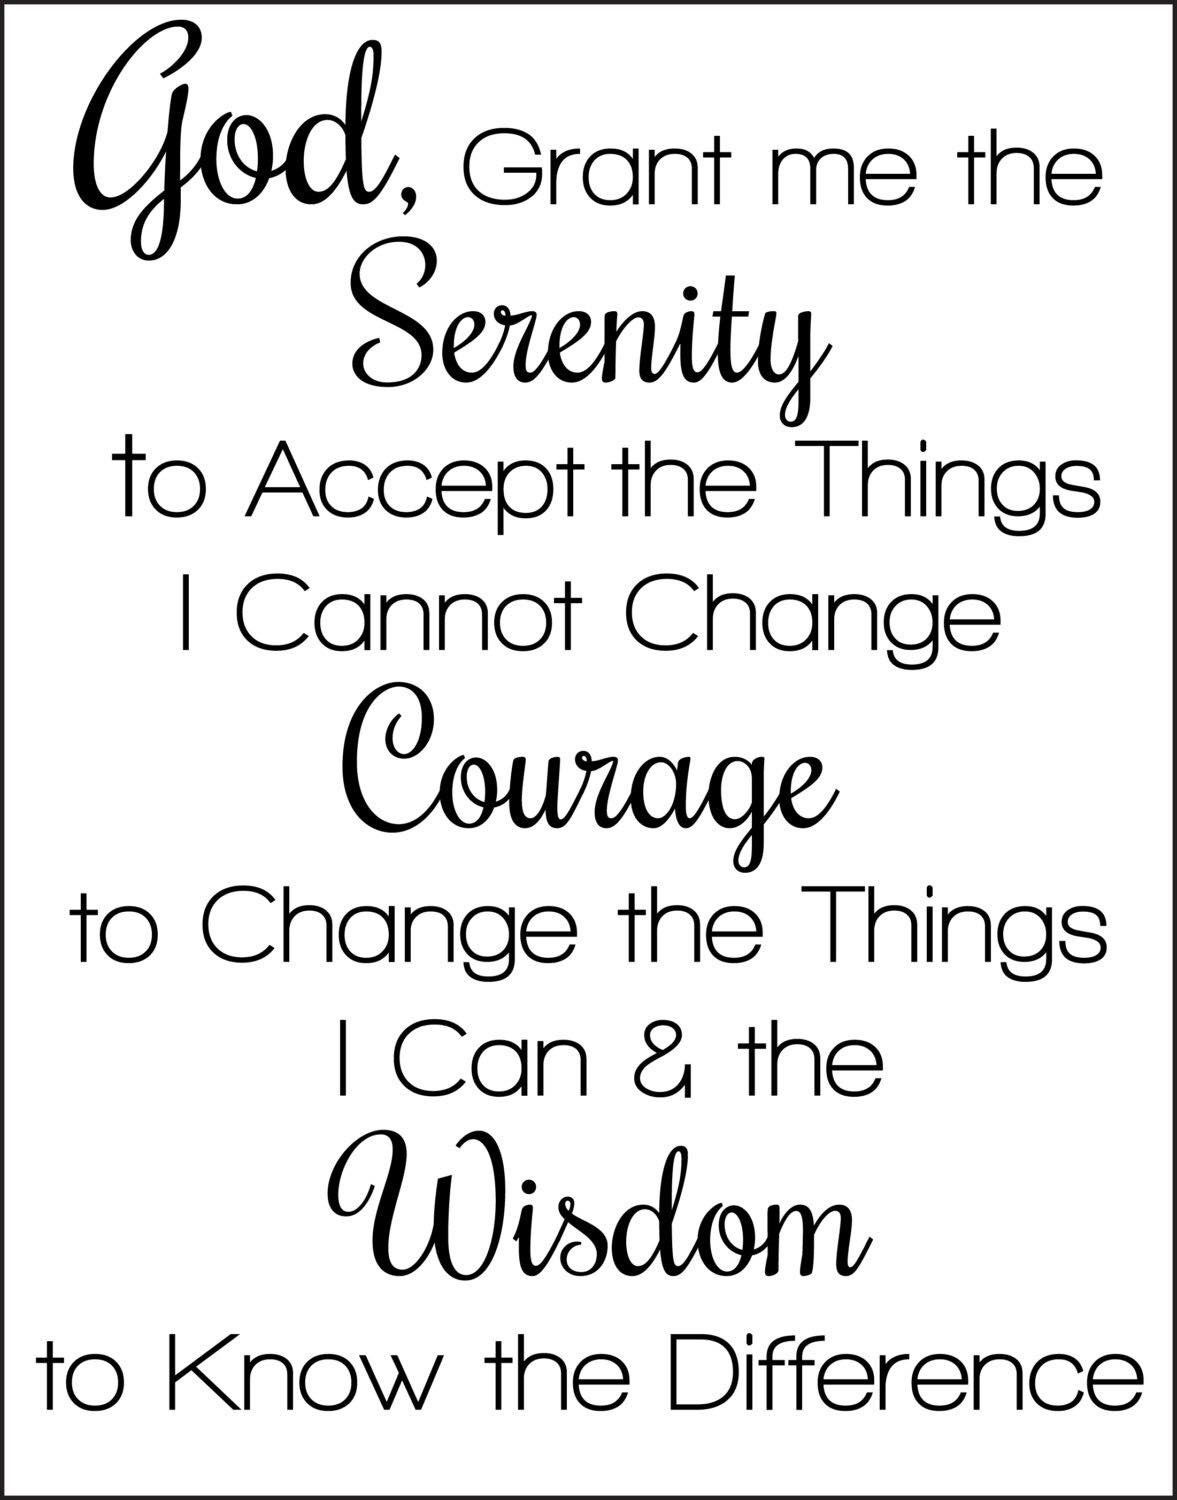 Pindebra Romine On Well Said | Serenity Prayer, Full Serenity - Free Printable Serenity Prayer